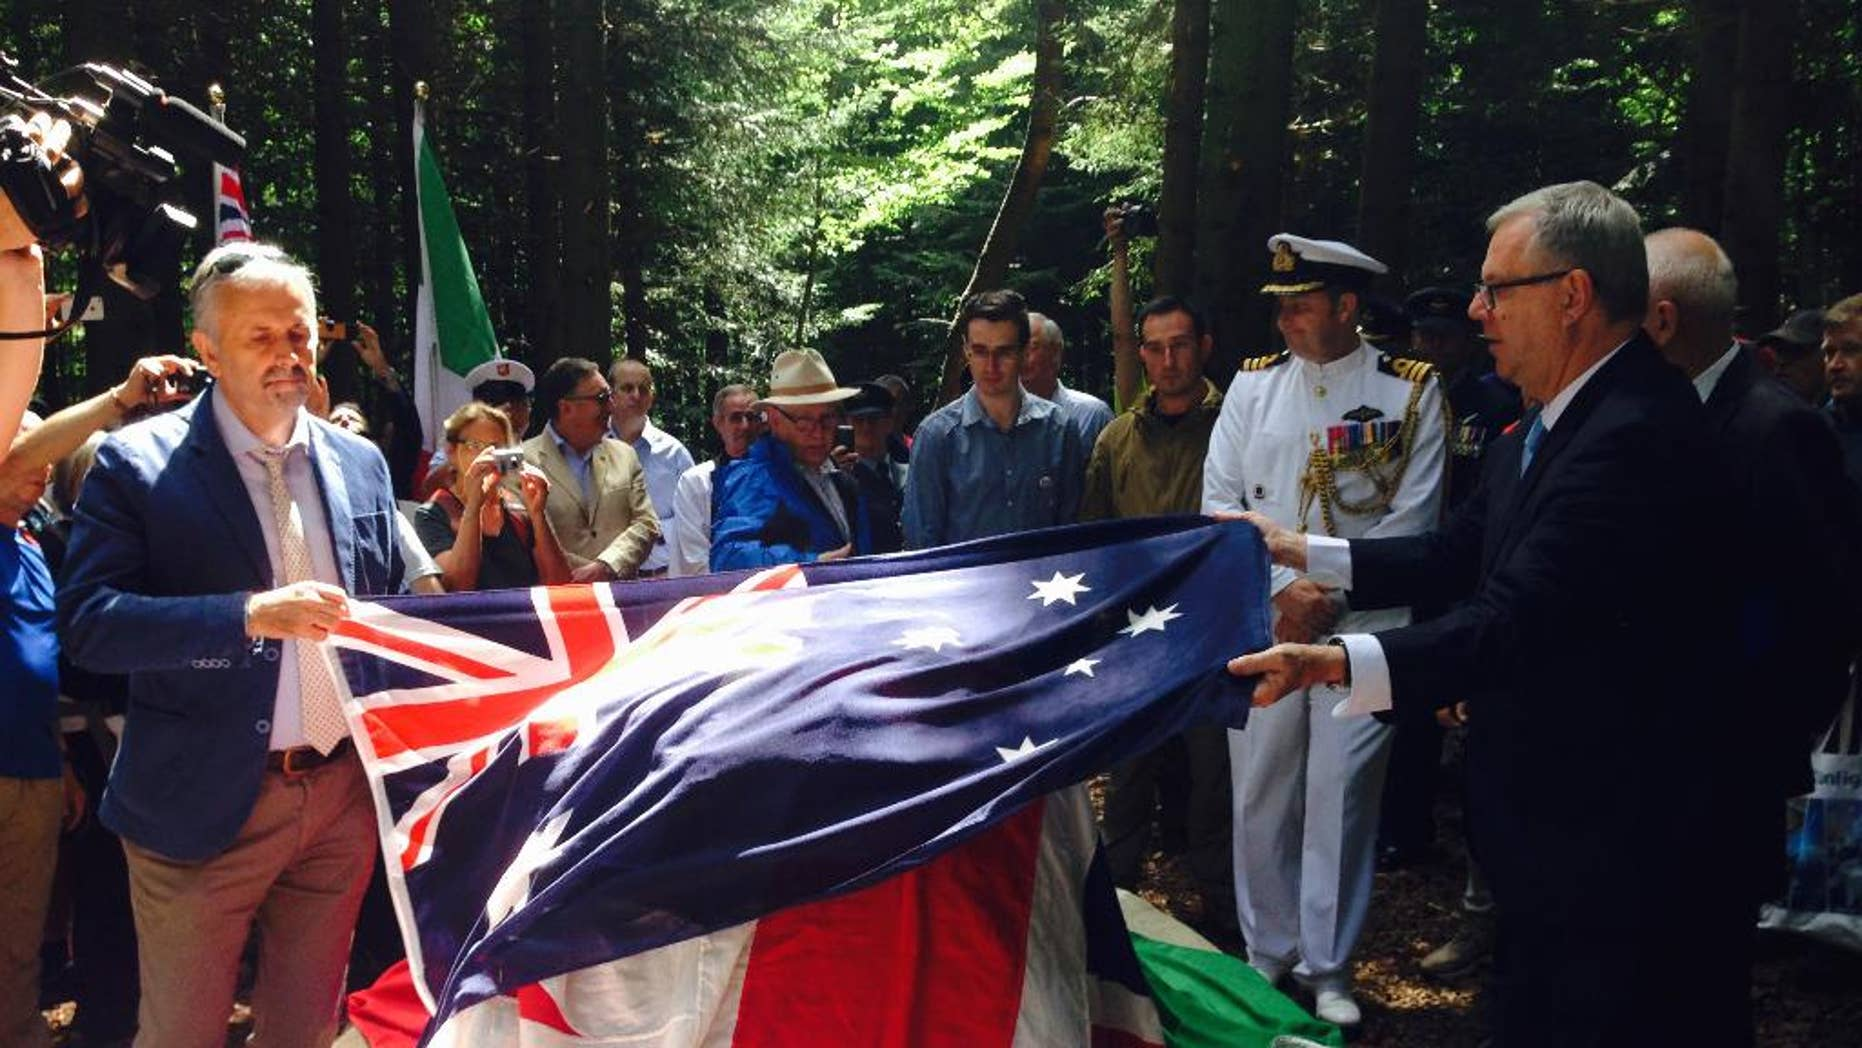 Australian ambassador to Italy, Mike Rann, right, lays the Australian flag on the occasion of the unveiling of a memorial dedicated to the Australian aviator Bert Hinkler in Castel San Niccolò near Arezzo, Tuscany, central Italy, Sunday, Aug. 2, 2015. The pilot died in an accident 1933 and for decades it has been unclear where he exactly fell, but thanks to discovery of new photos and the effort of local researchers it was possible to find the crash point on the Pratomagno mountain, in Arezzo province. (AP Photo/Paolo Santalucia)